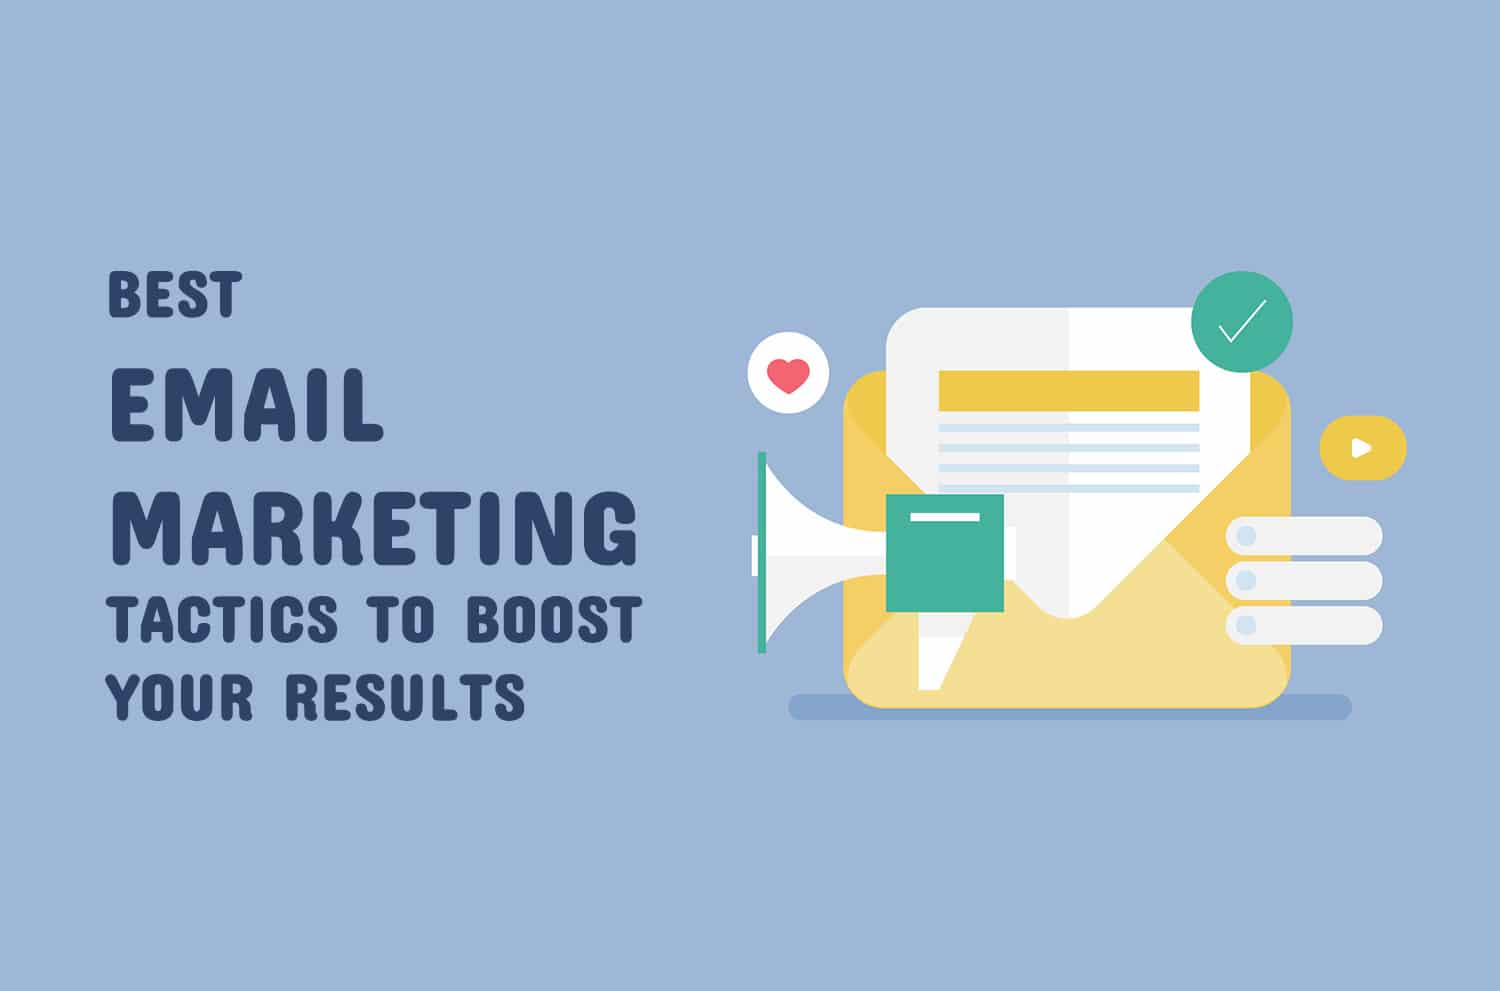 Email marketing tips to boost results